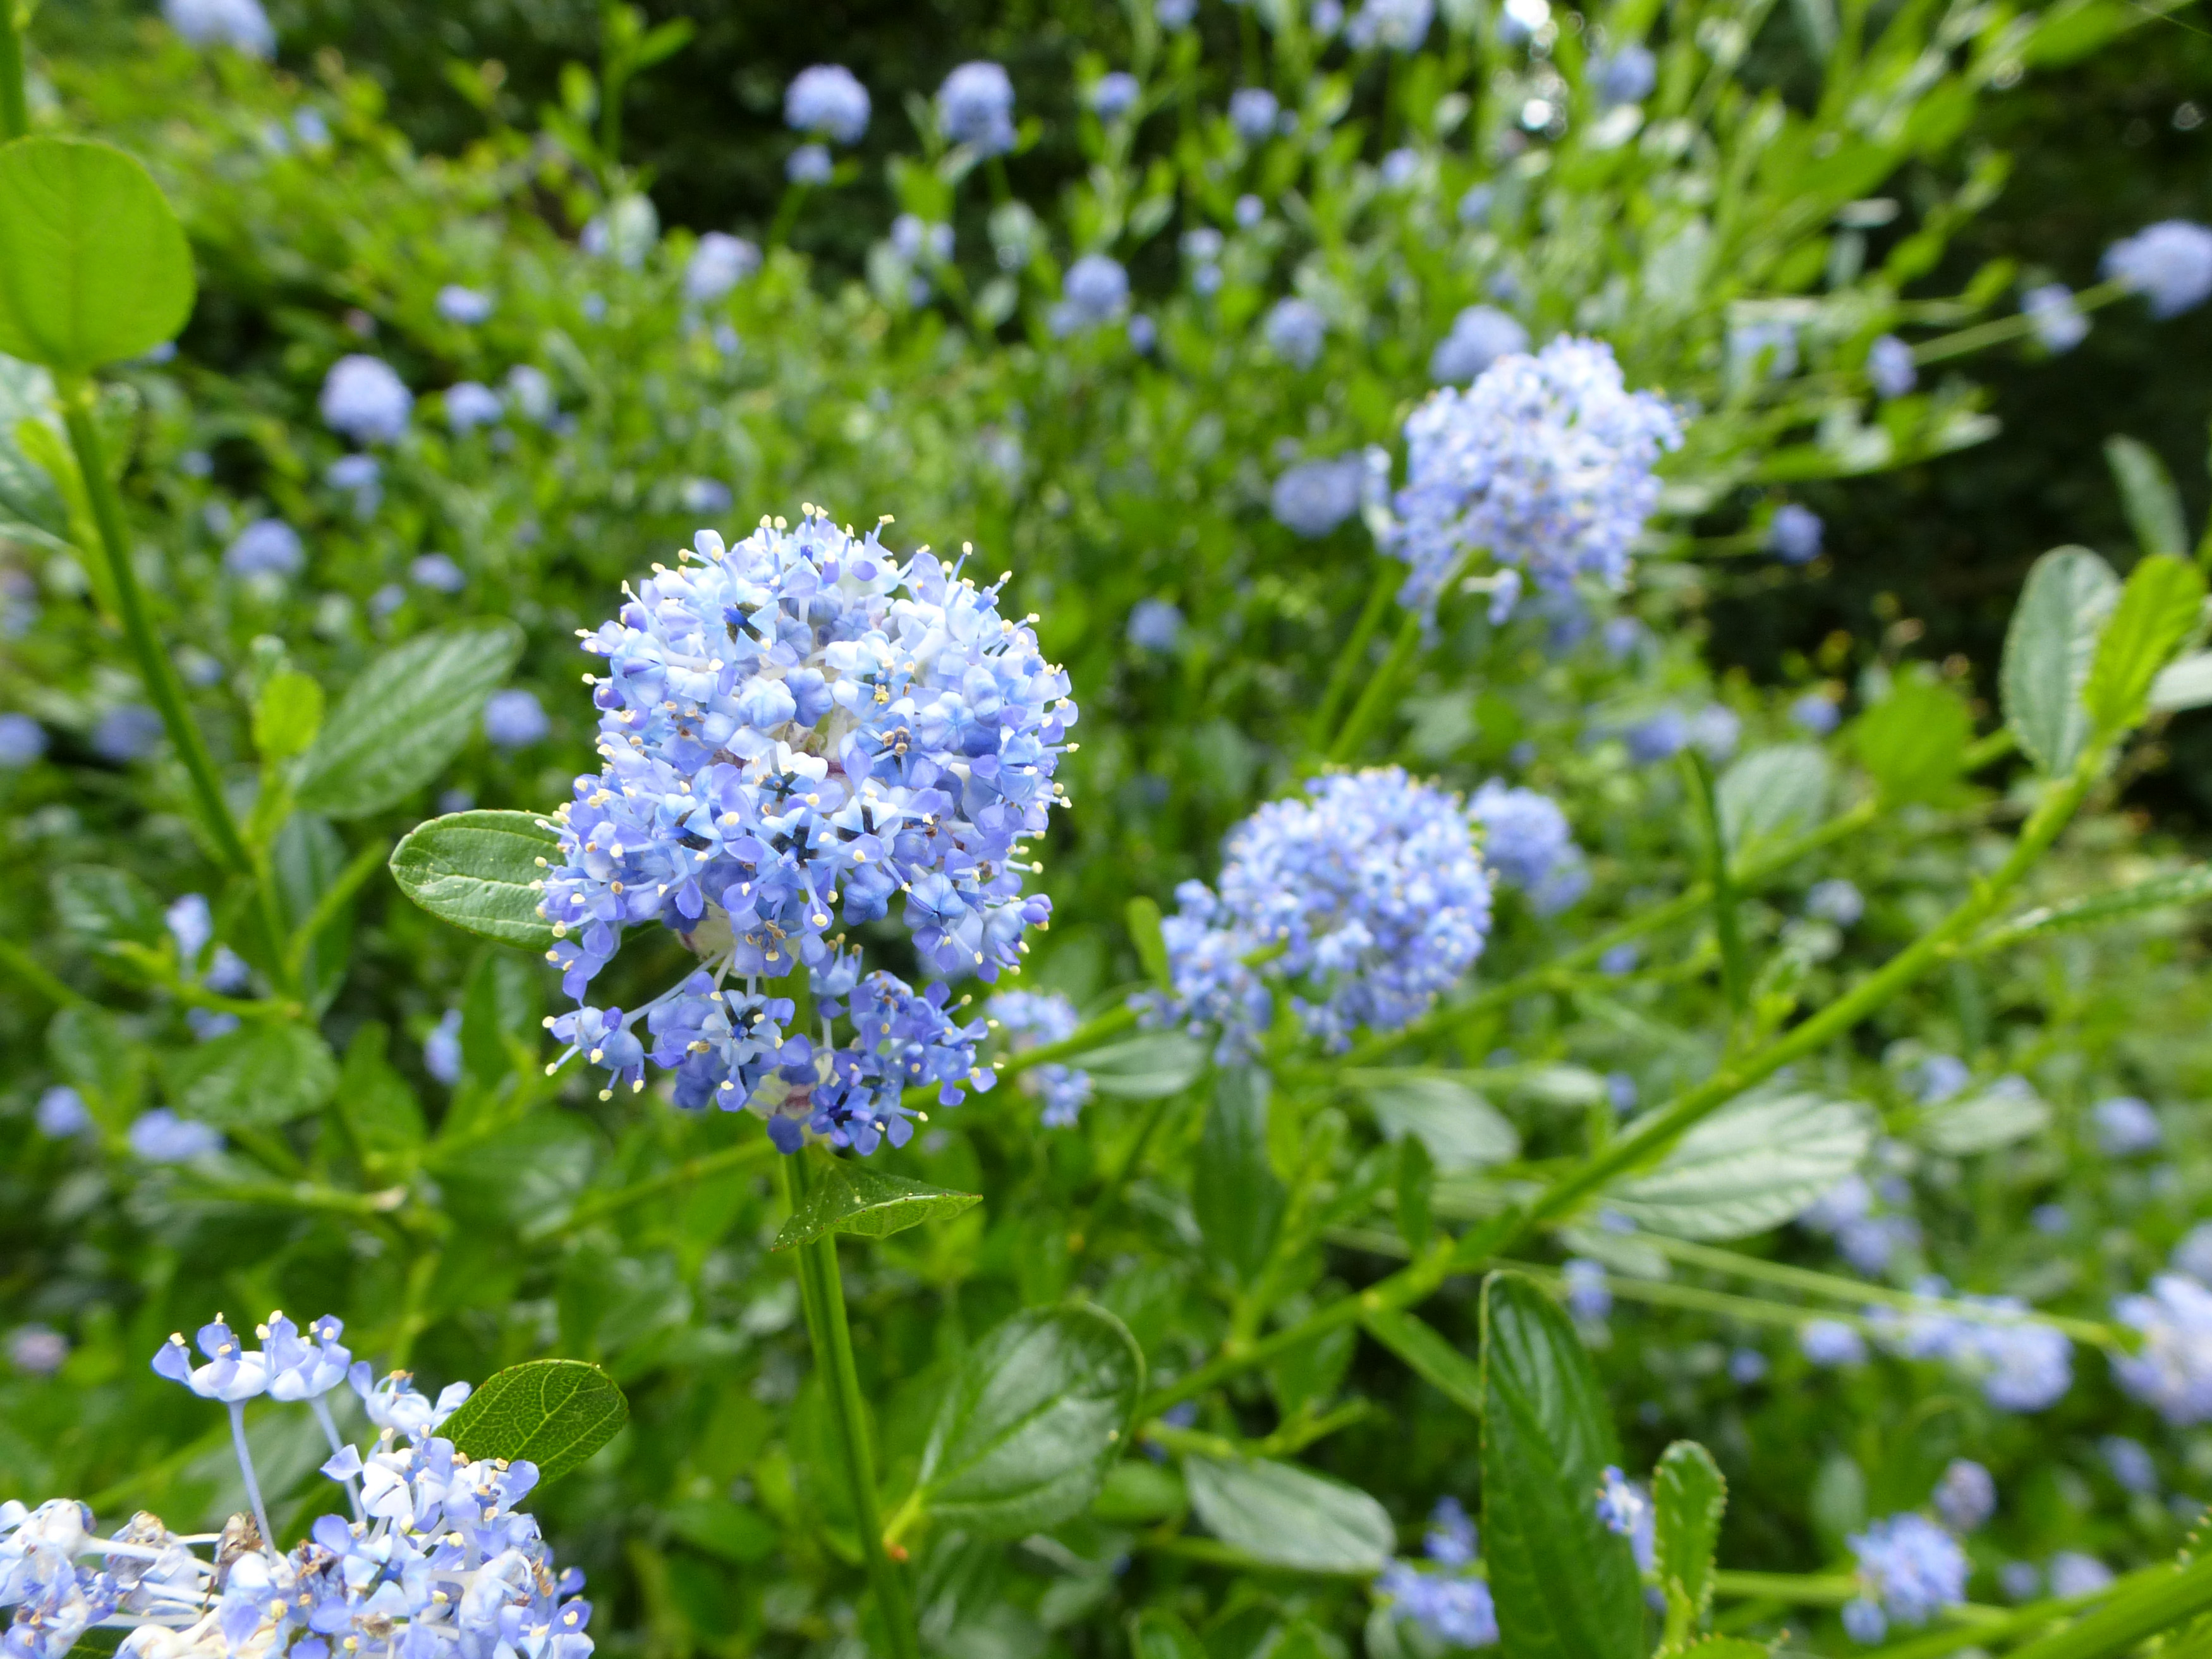 Free stock photo 12917 light blue flower cluster on plant in garden close up on light blue flower cluster on plant in outdoor garden during the summer season izmirmasajfo